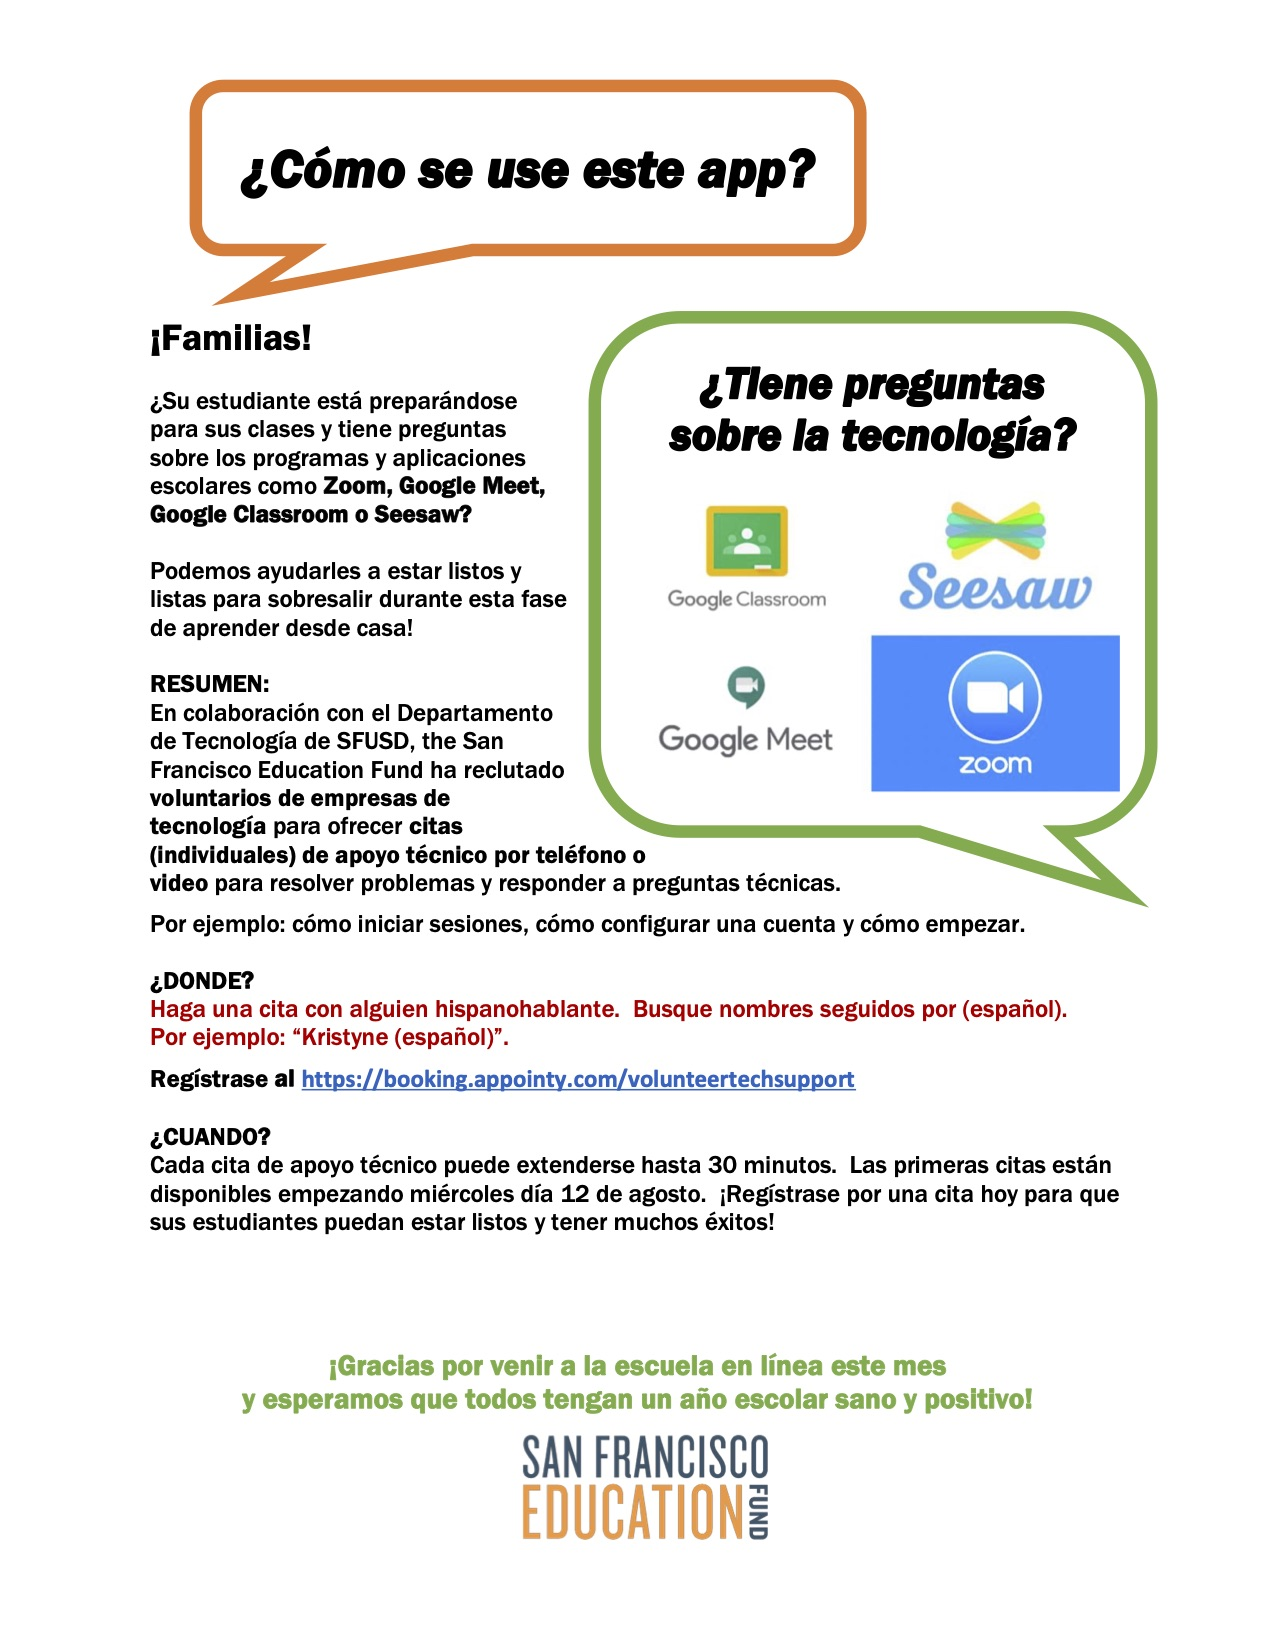 a flyer with a white background detailing information about tech support in Spanish from Salesforce